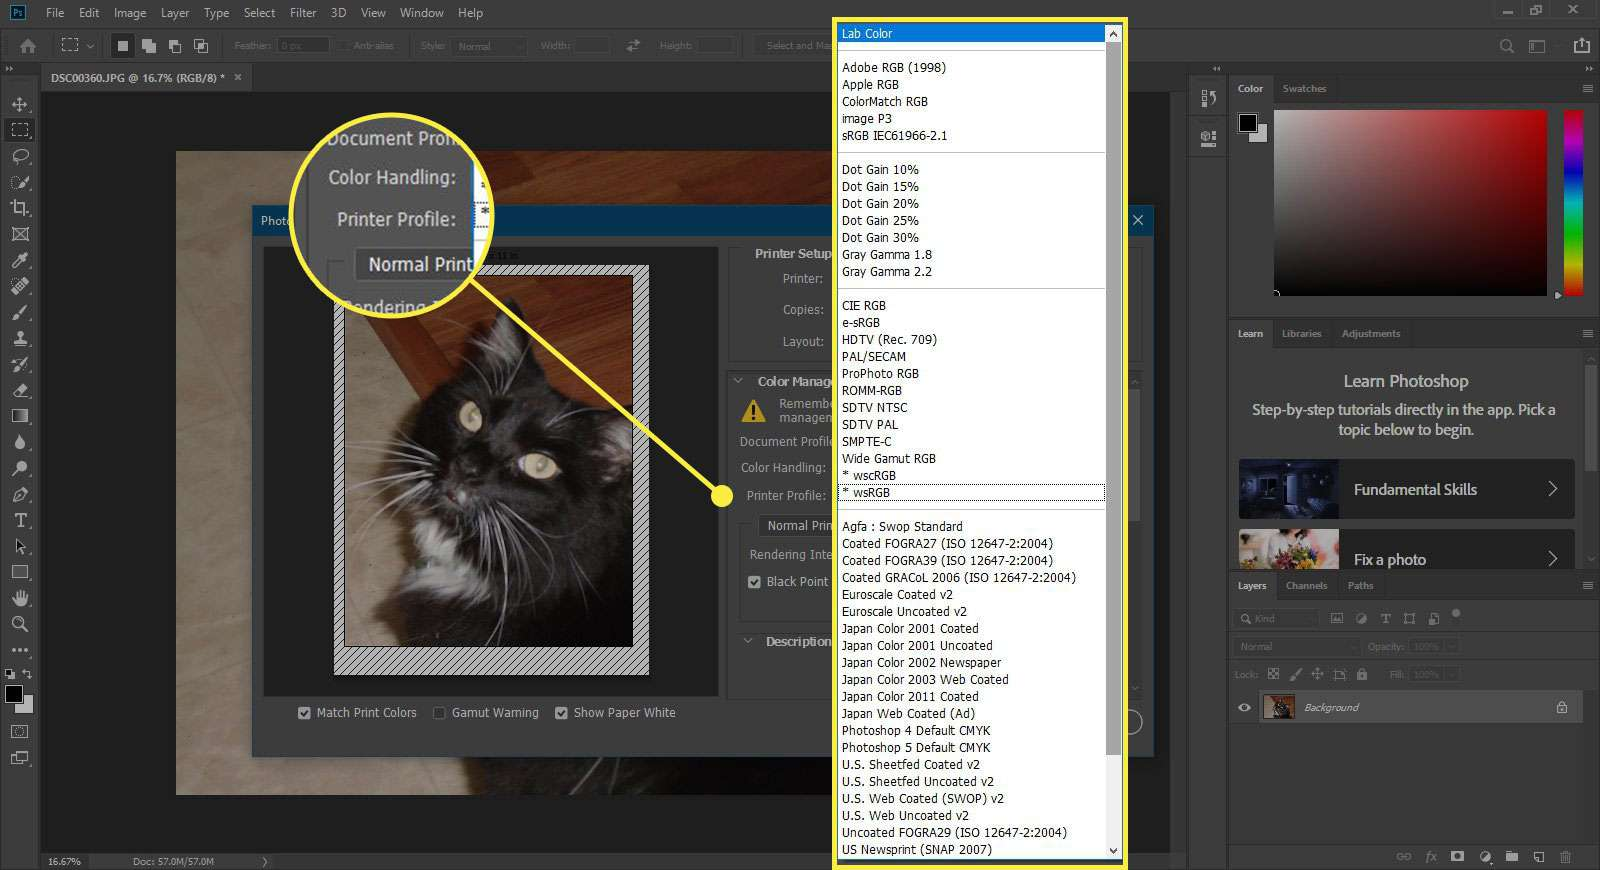 A screenshot of Photoshop's Print window with the Printer Profile options highlighted